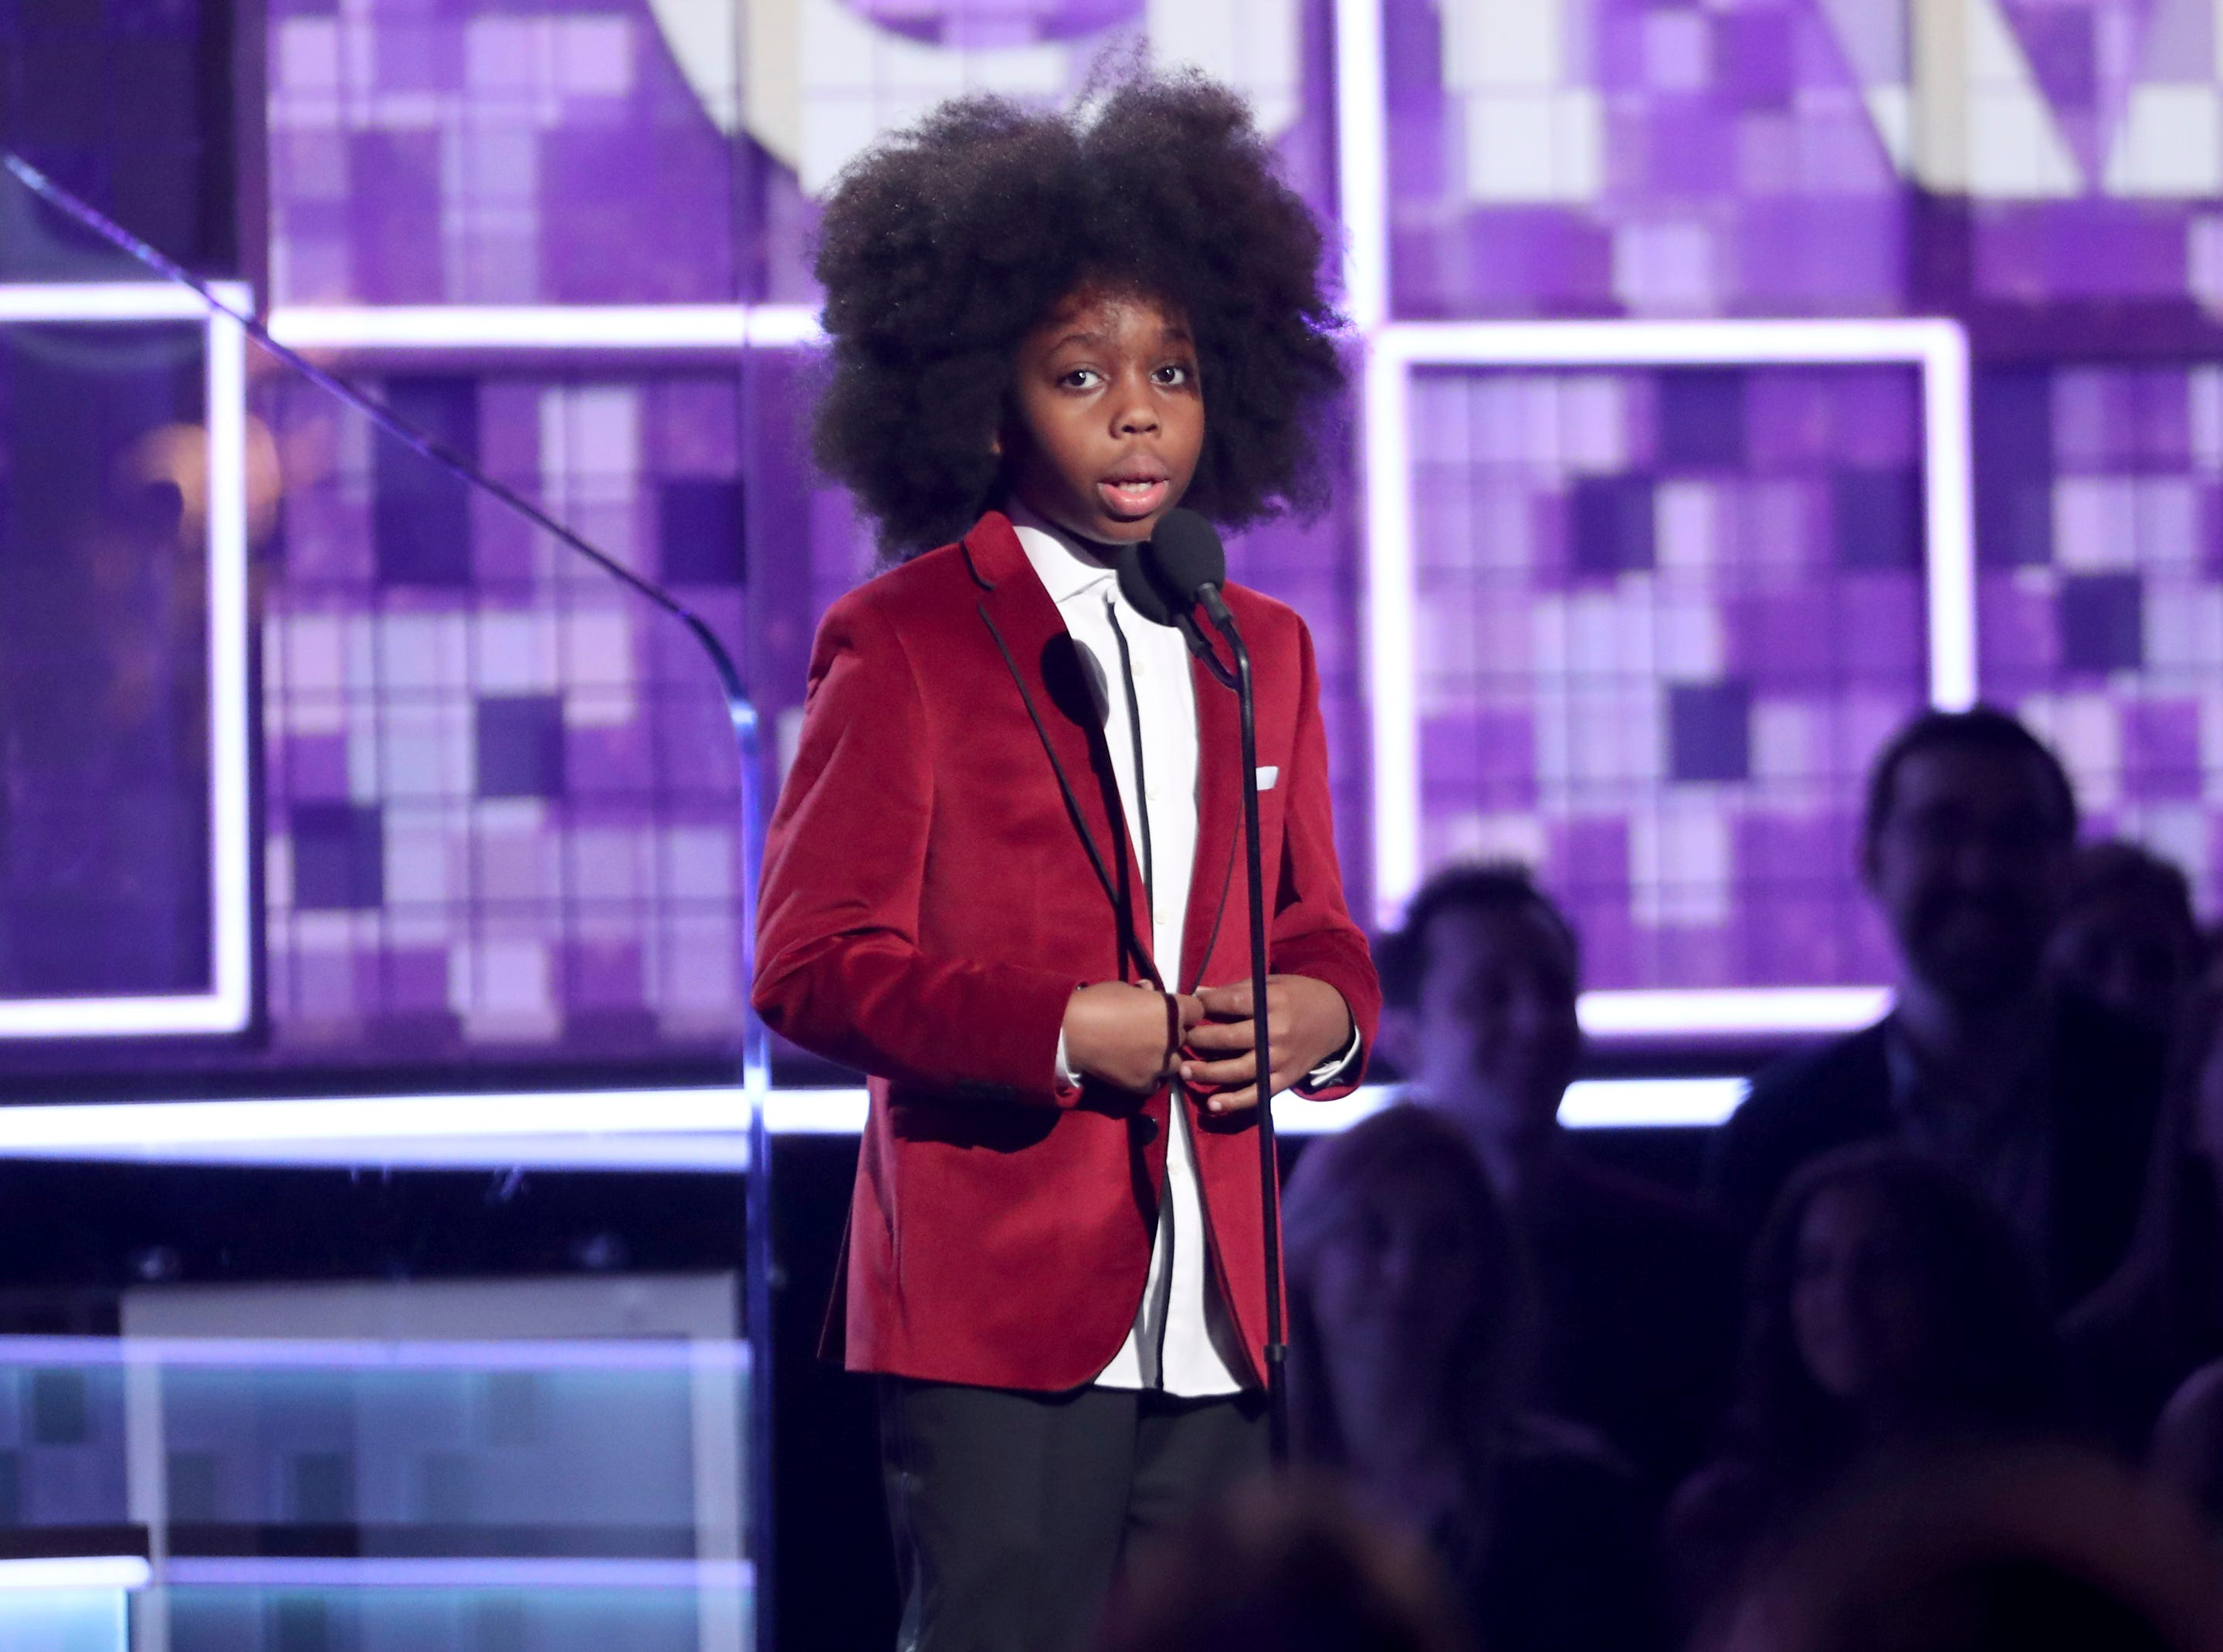 Raif-Henok Emmanuel Kendrick introduces a performance by grandmother Diana Ross at the 61st annual Grammy Awards.